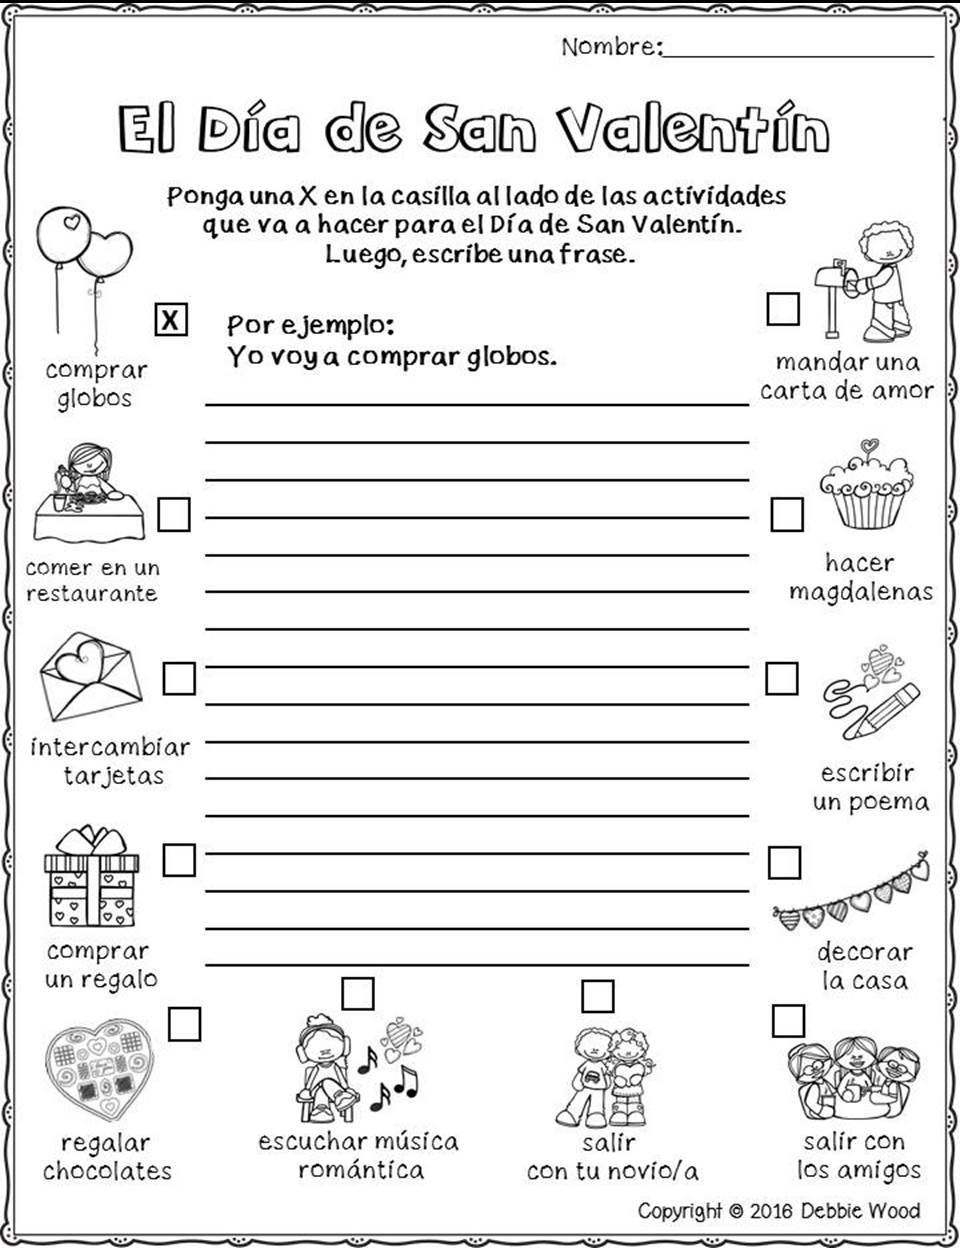 Worksheets Spanish Worksheets For Elementary Students spanish valentines day activities actividades para febrero dia worksheetsspanish teaching